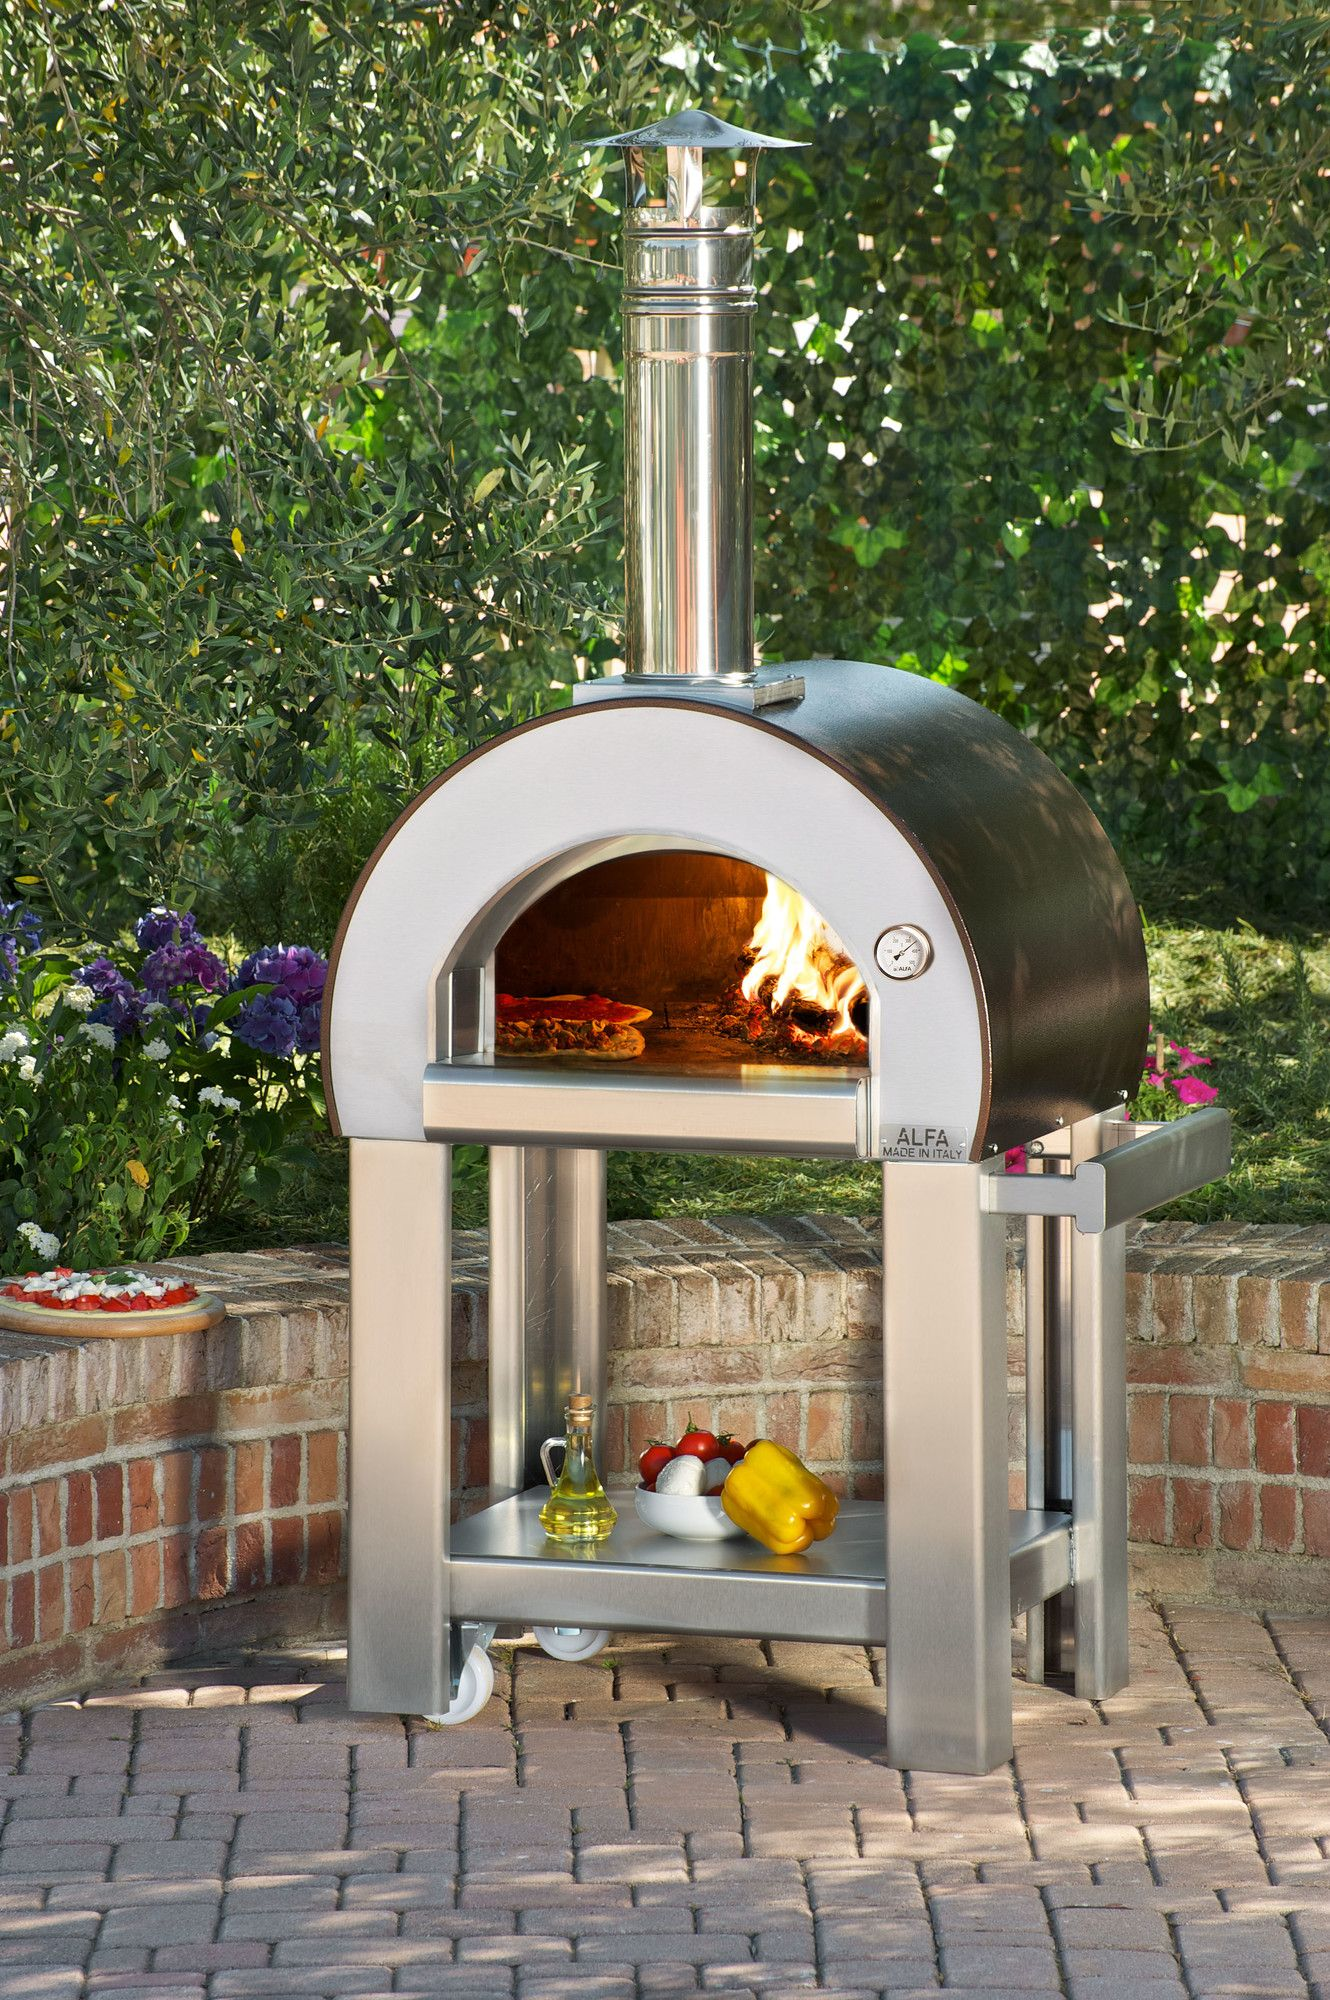 Alfa Pizza Forno 5 Wood Burning Pizza Oven & Reviews